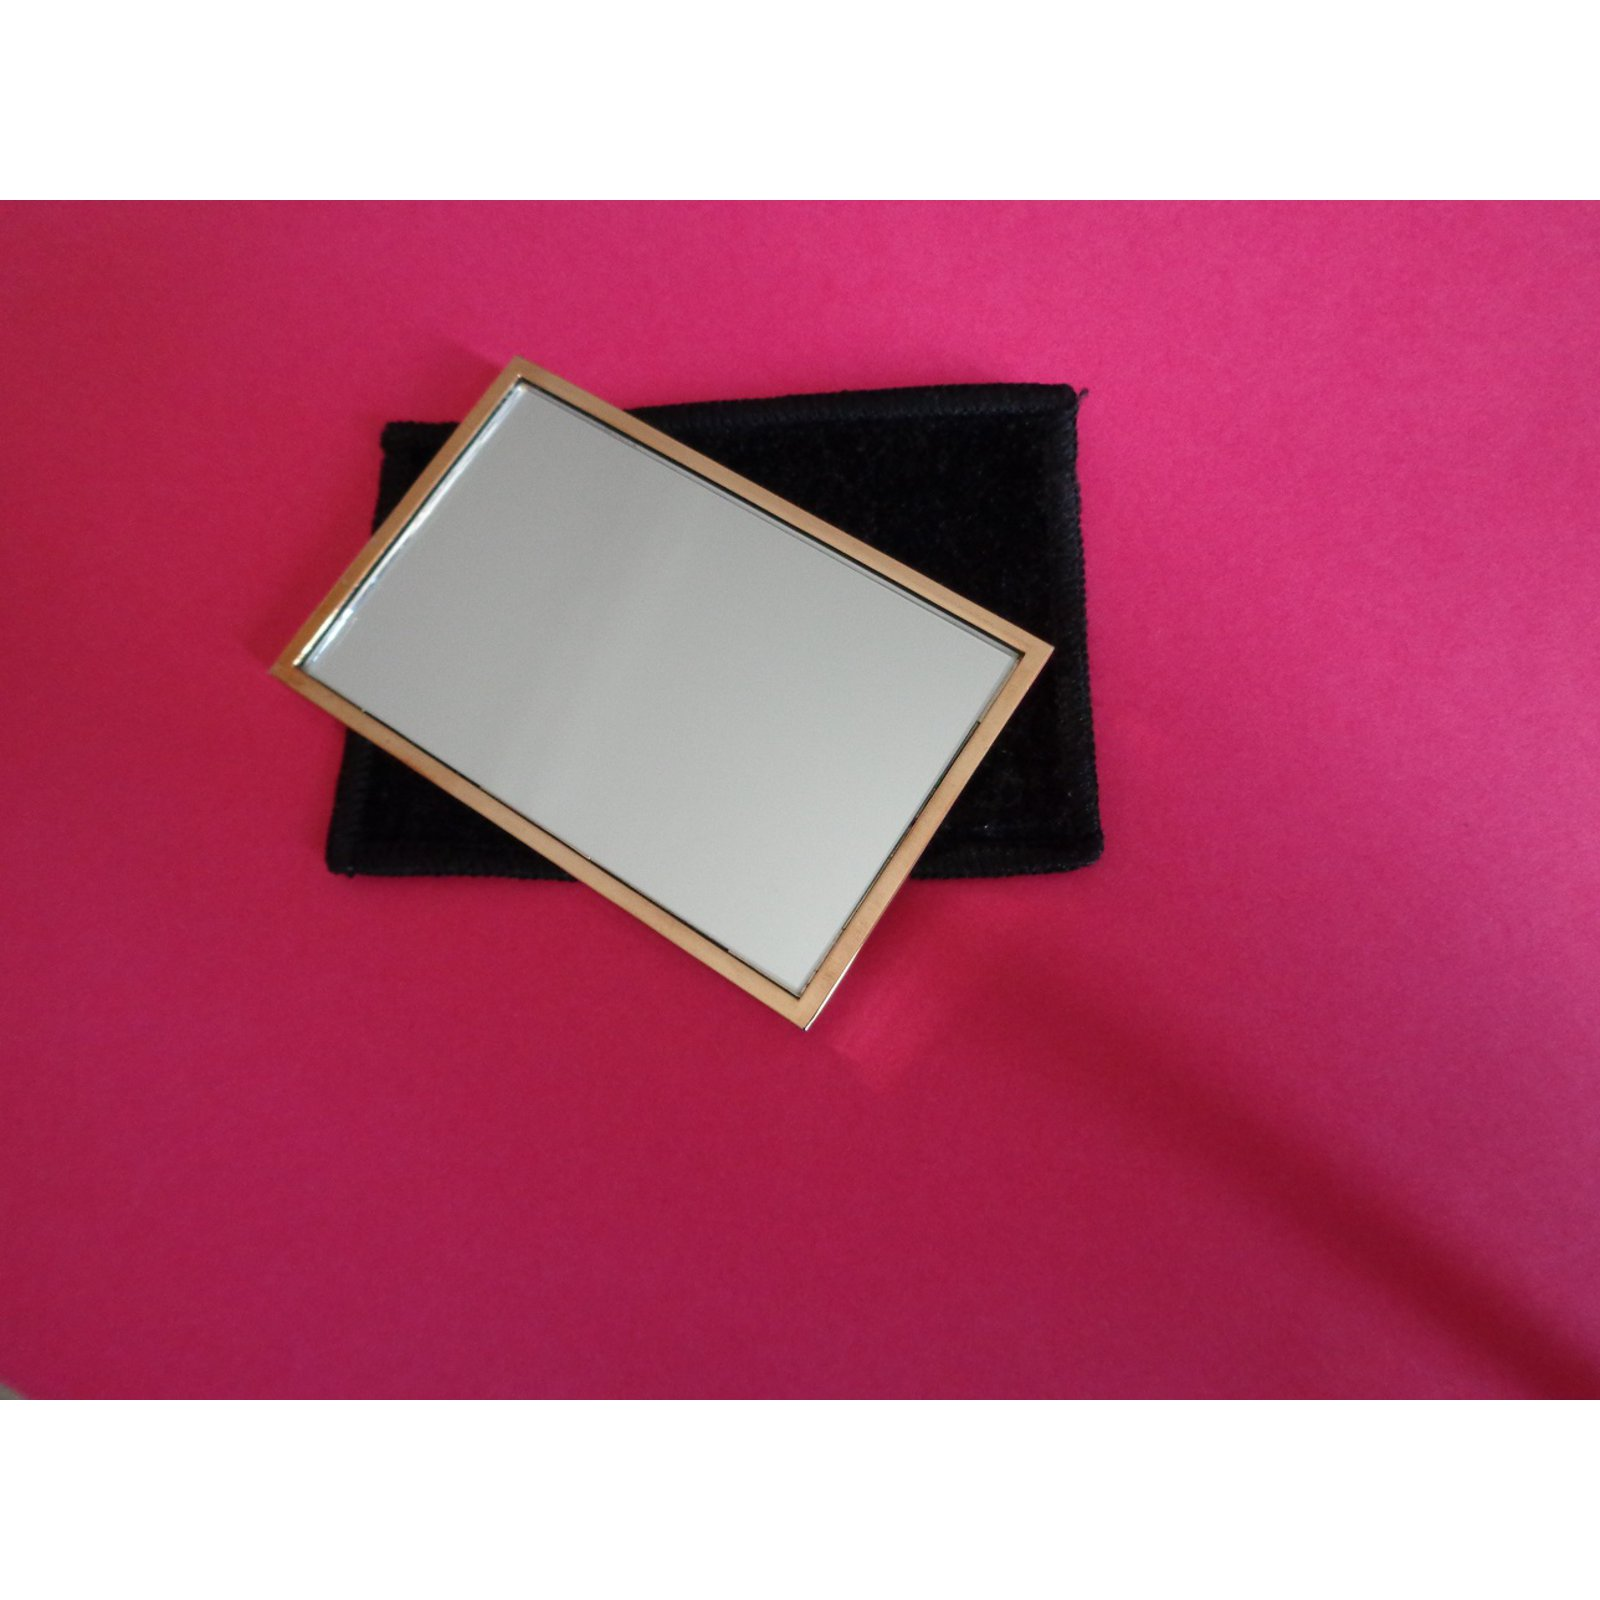 De Sac Miroir Saint Yves Laurent WE9HD2IY